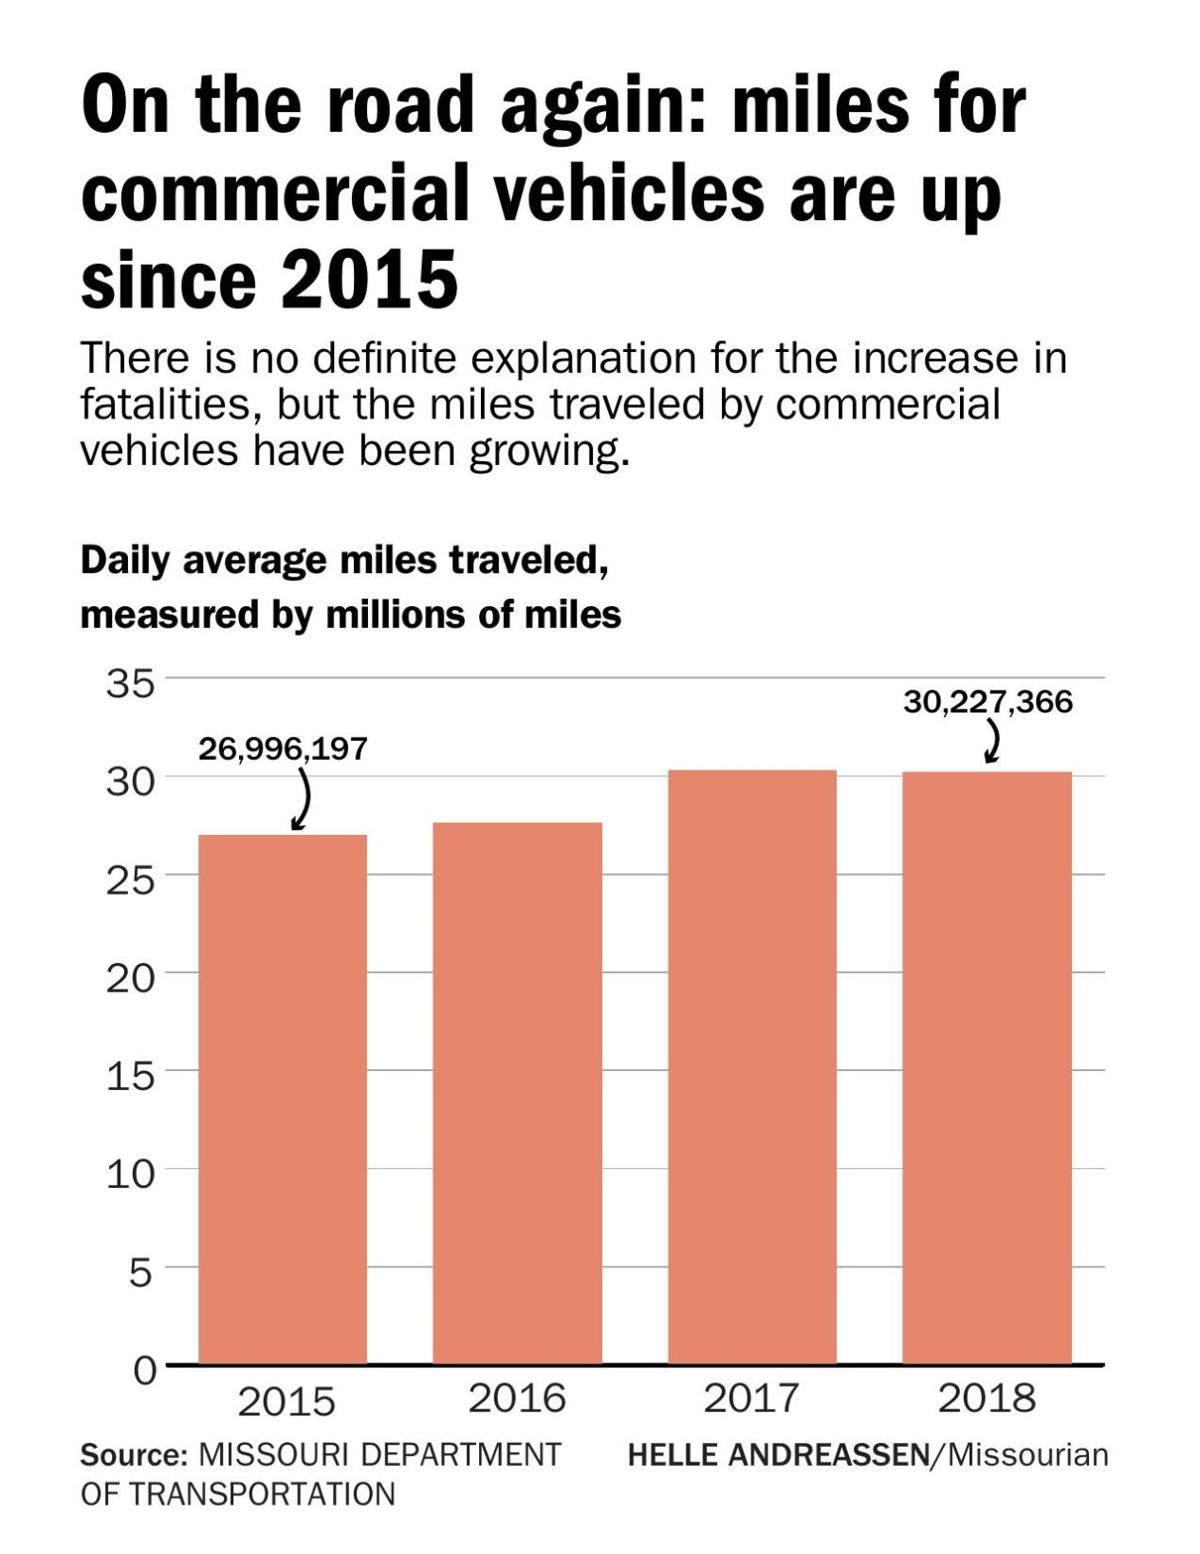 On the road again: miles for commercial vehicles are up since 2015